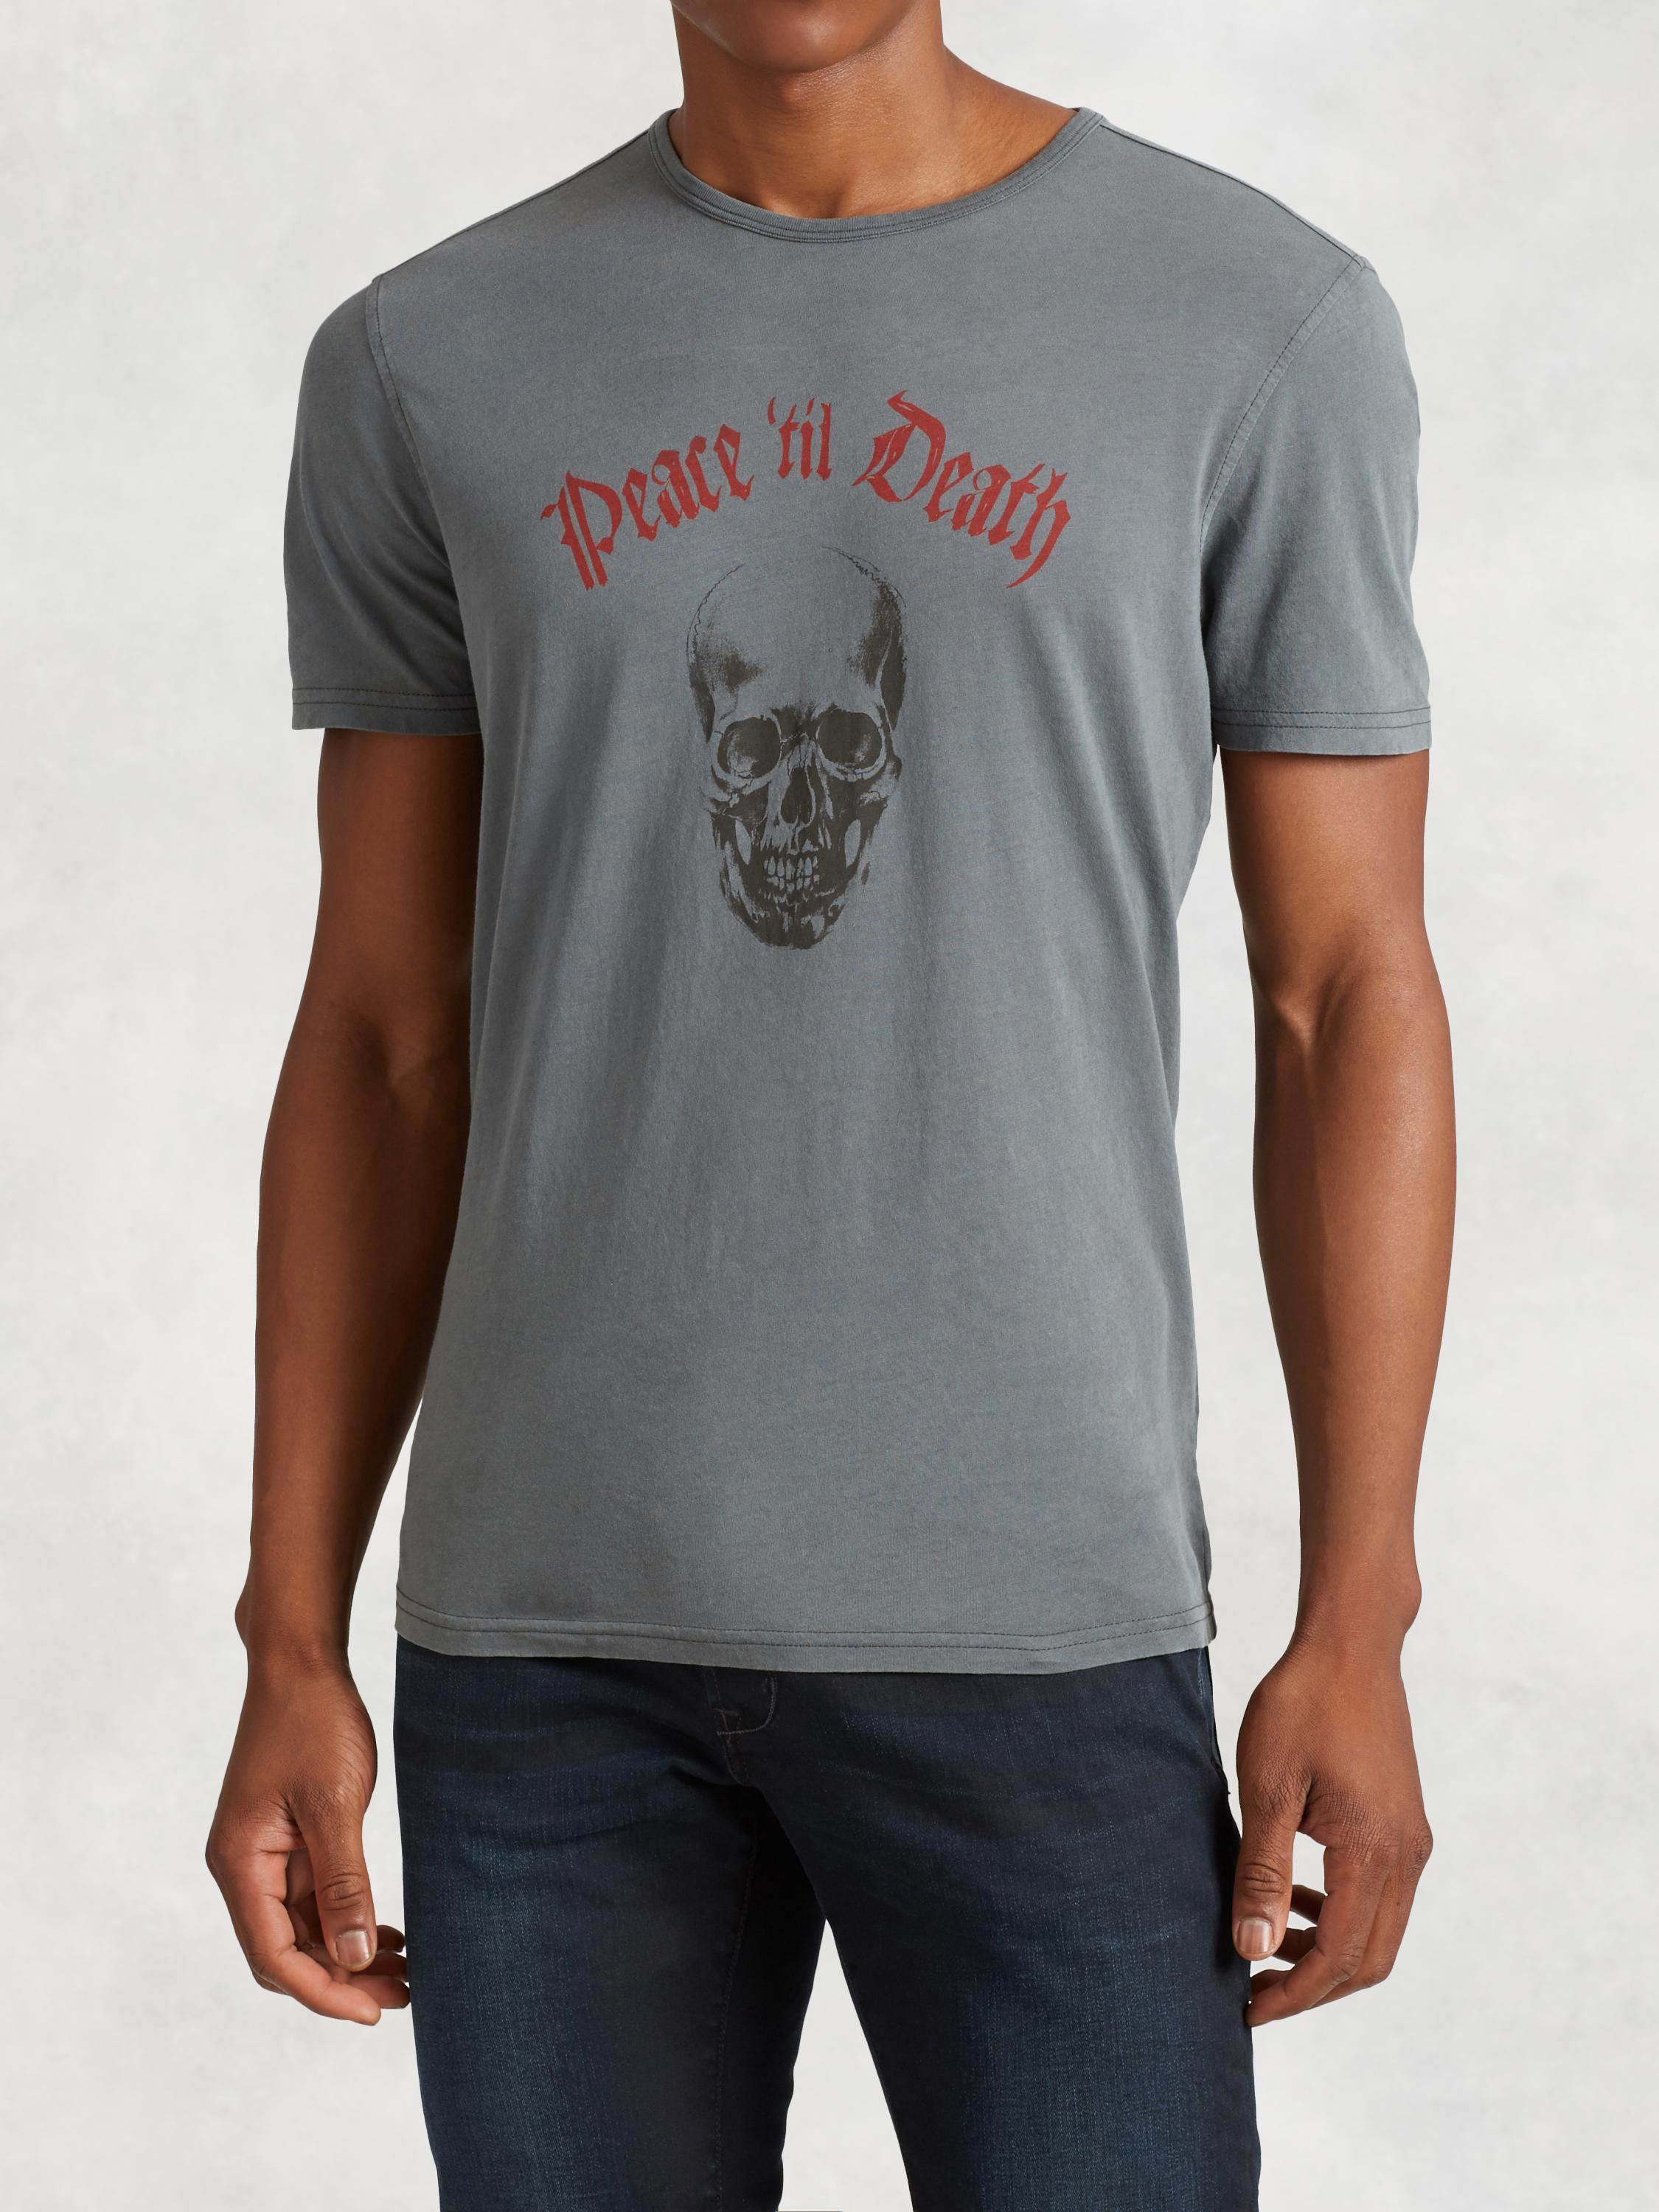 Peace 'Til Death Graphic Tee